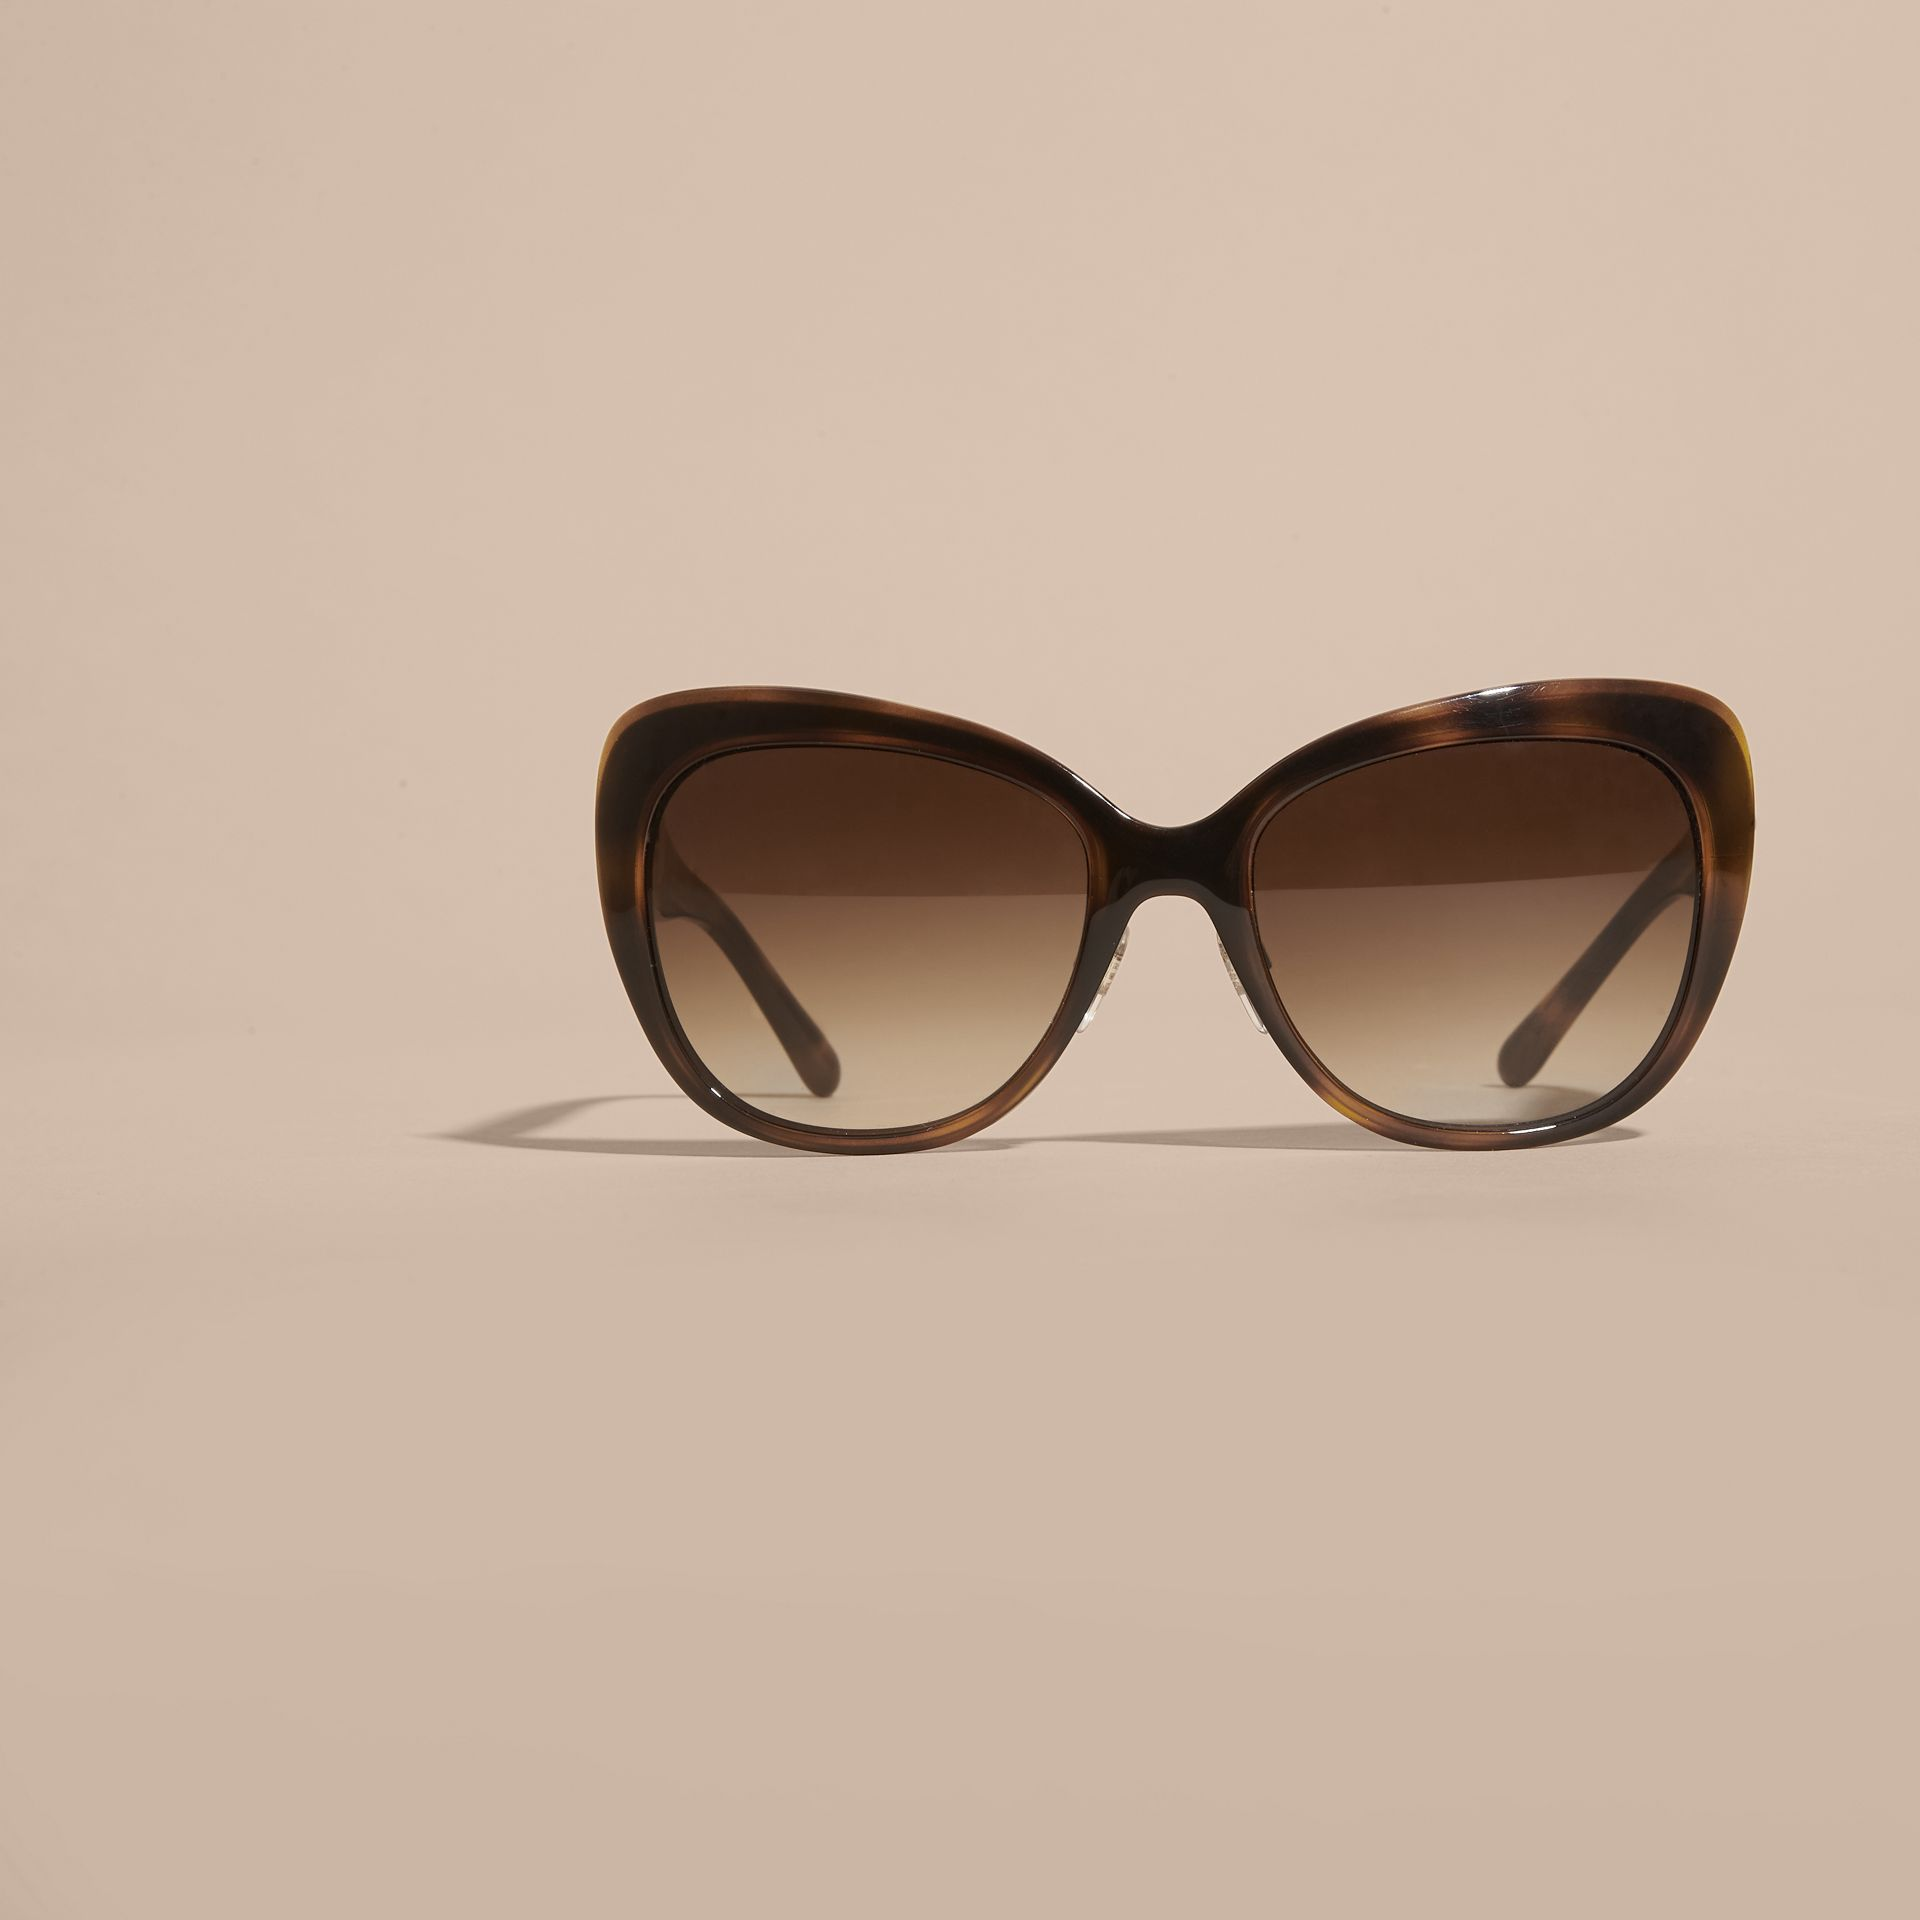 Light russet brown Check Detail Square Cat-eye Sunglasses Light Russet Brown - gallery image 3